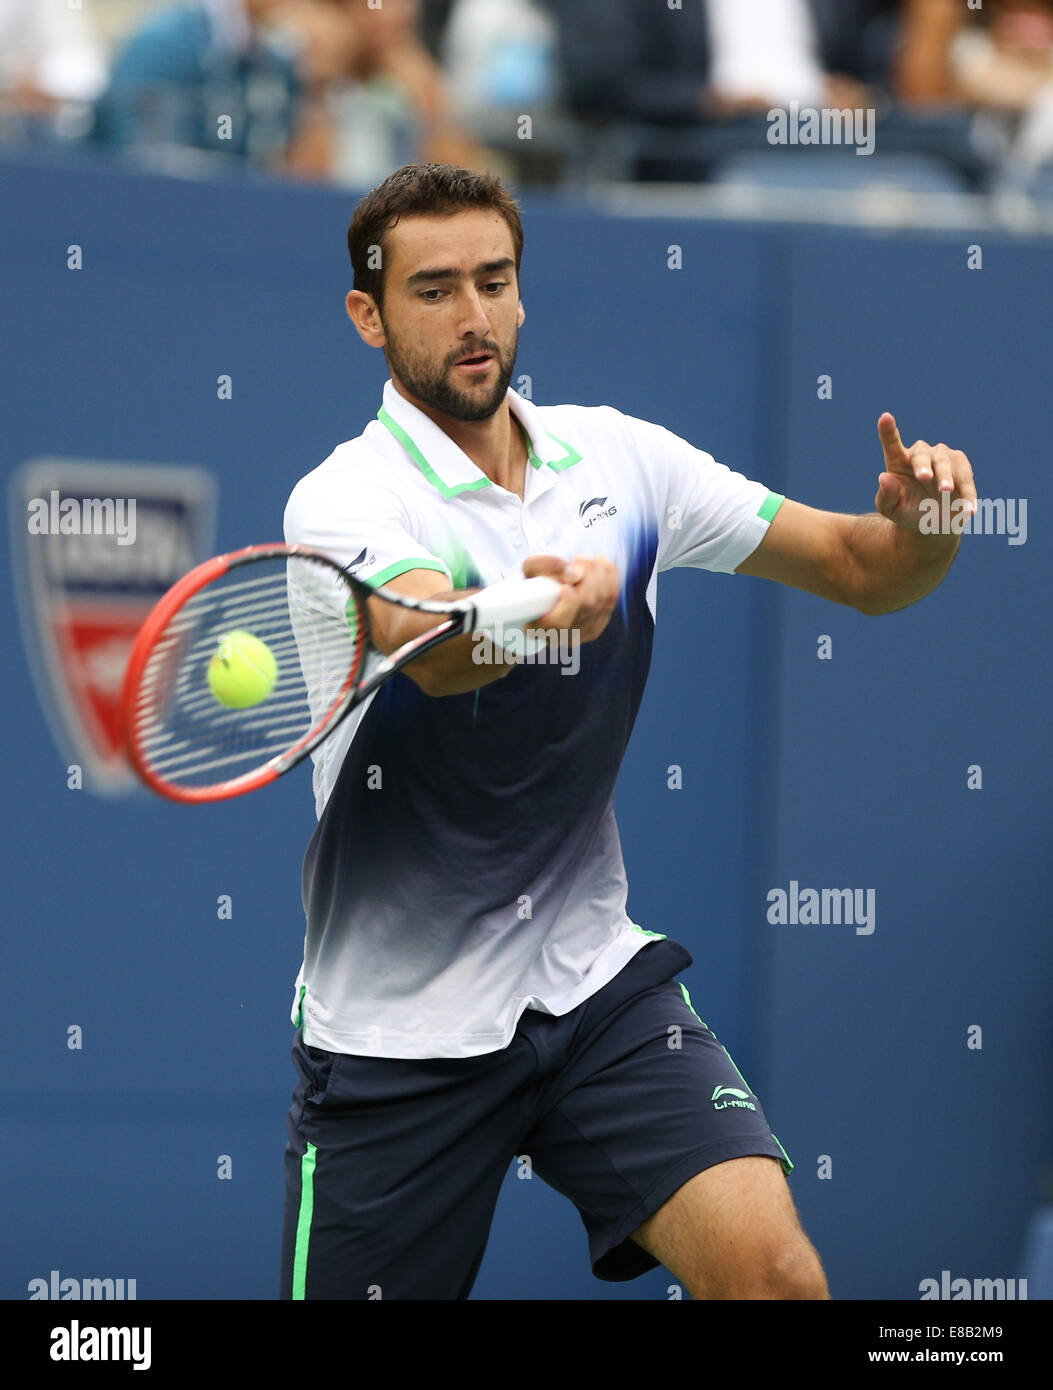 Marin Cilic (CRO) in action at the US Open Championships 2014 in New York,USA. - Stock Image